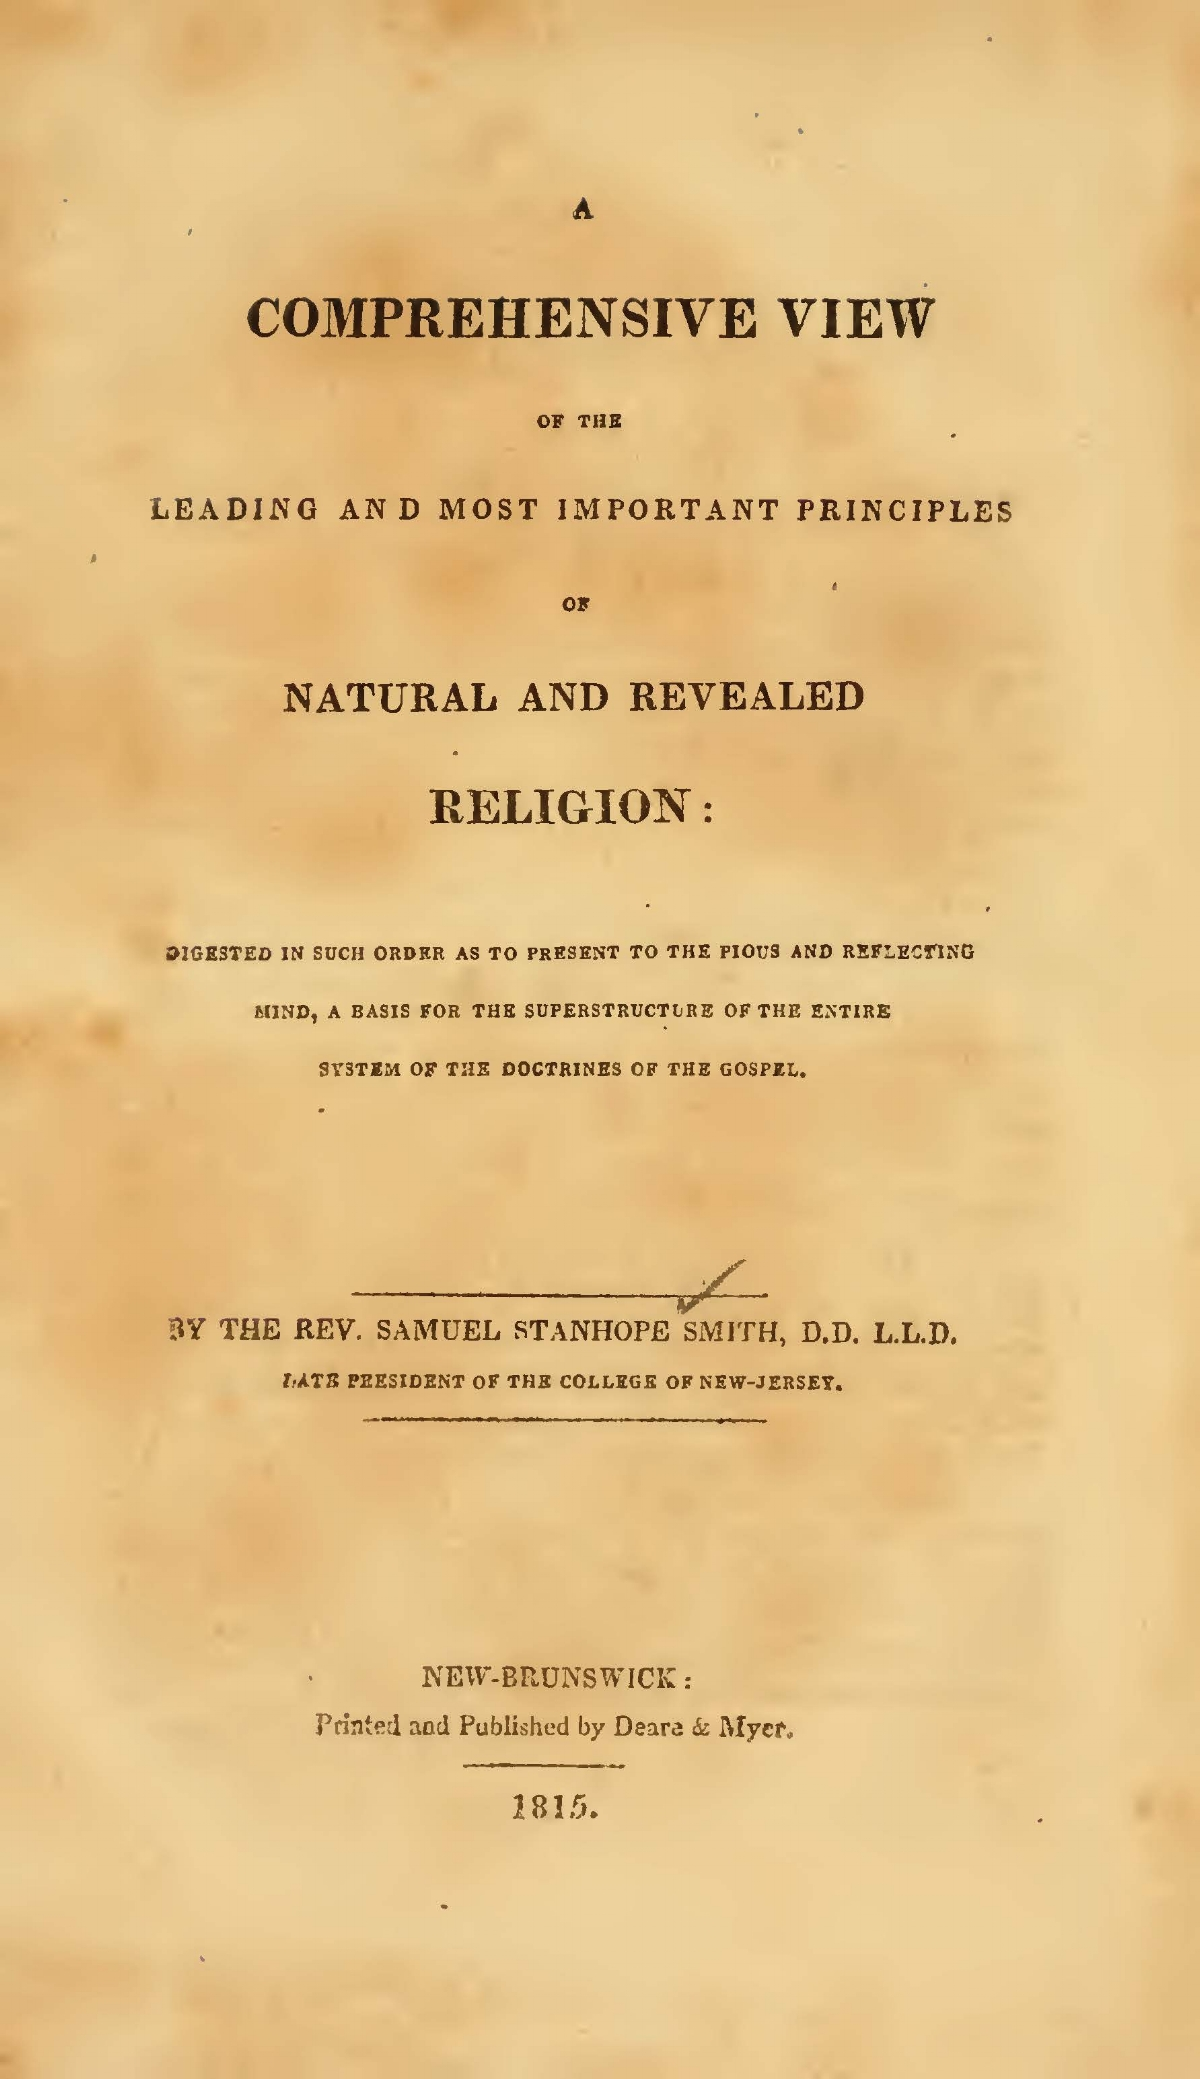 Smith, Samuel Stanhope, A Comprehensive View of the Leading and Most Important Principles of Natural and Revealed Religion Title Page.jpg